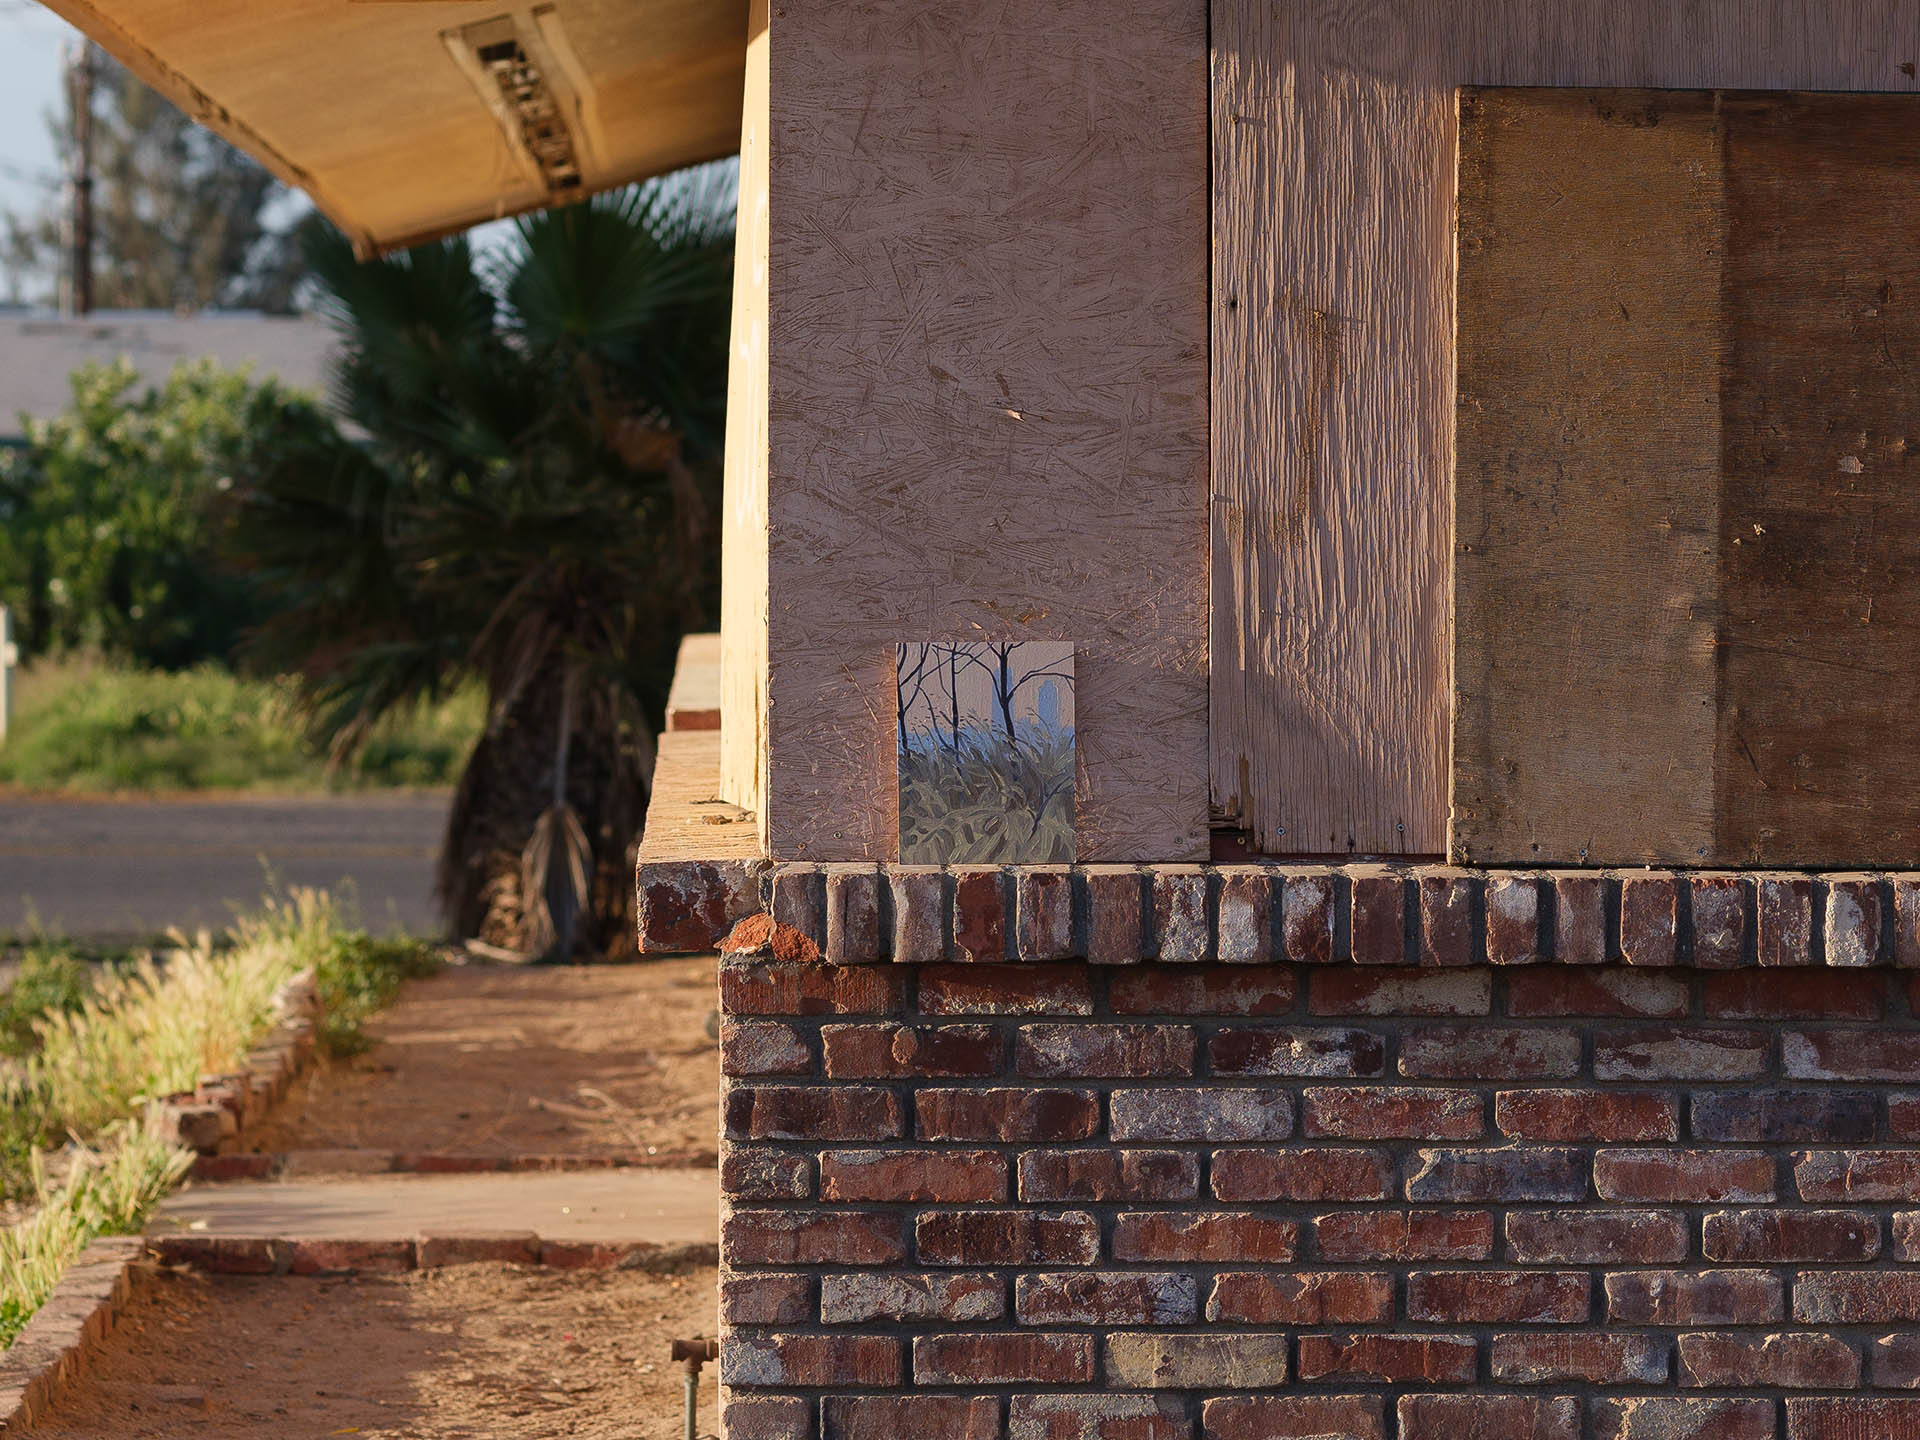 An installation view of Claudia Keep's painting, Sunset, Domino Park, captured by photographer Tag Christof in the Western United States in 2021 for MARCH. The image shows a painting sitting against a brick and wood facade.